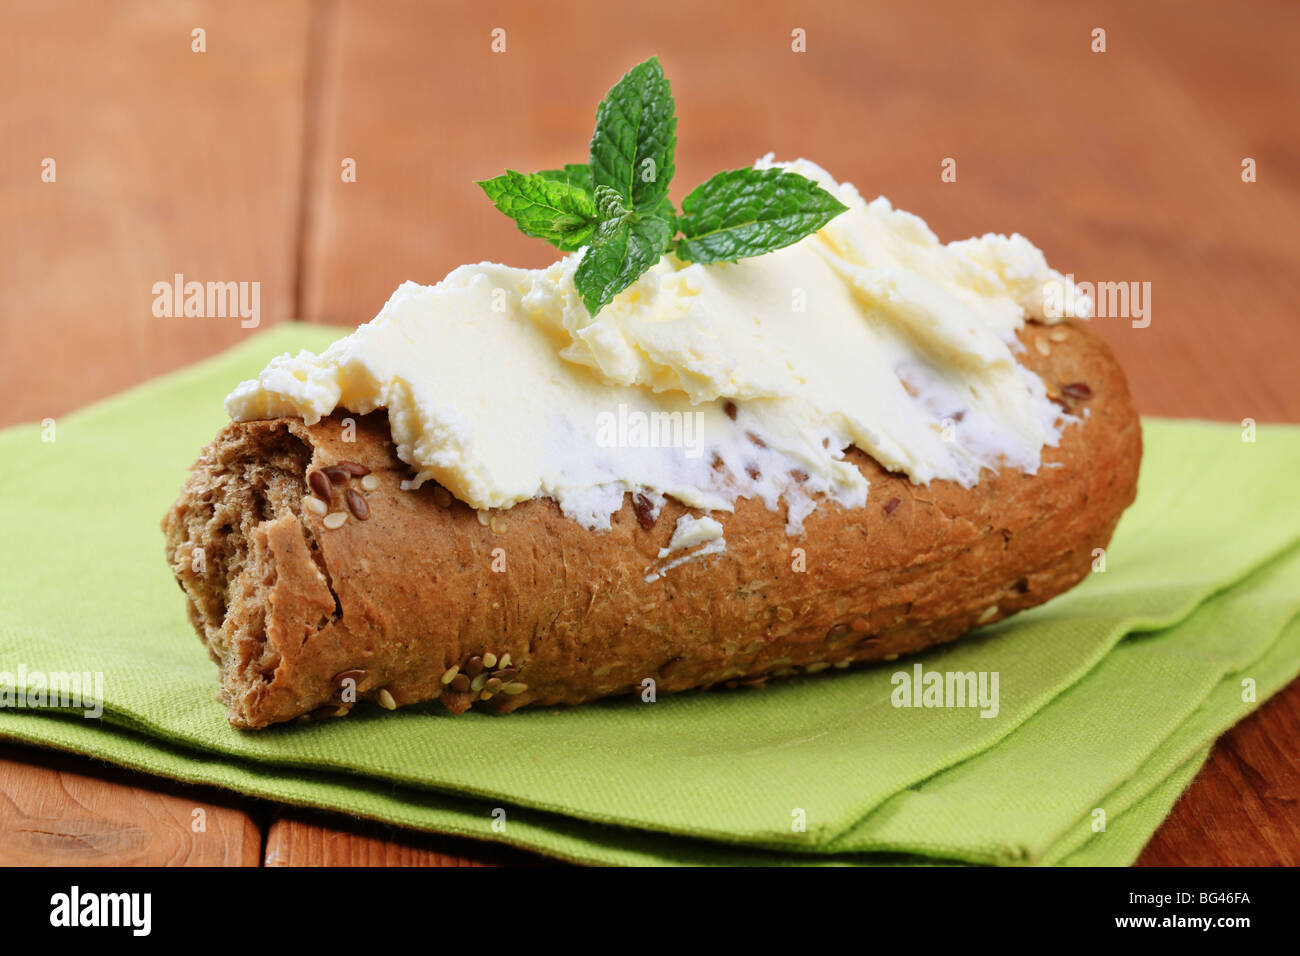 Whole wheat roll and savory spread - Stock Image